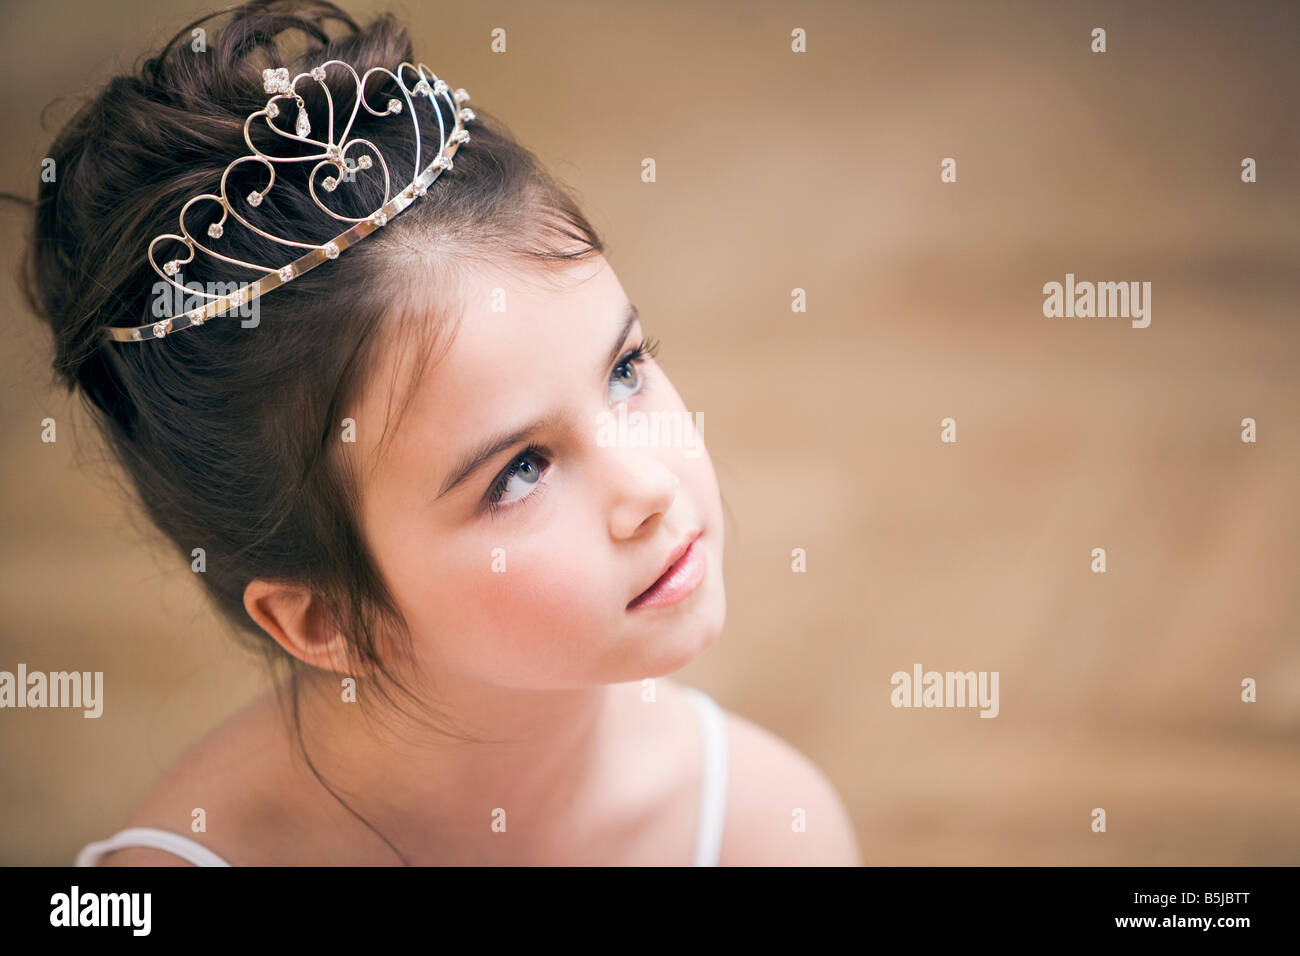 portrait of young ballet dancer wearing little crown Stock Photo